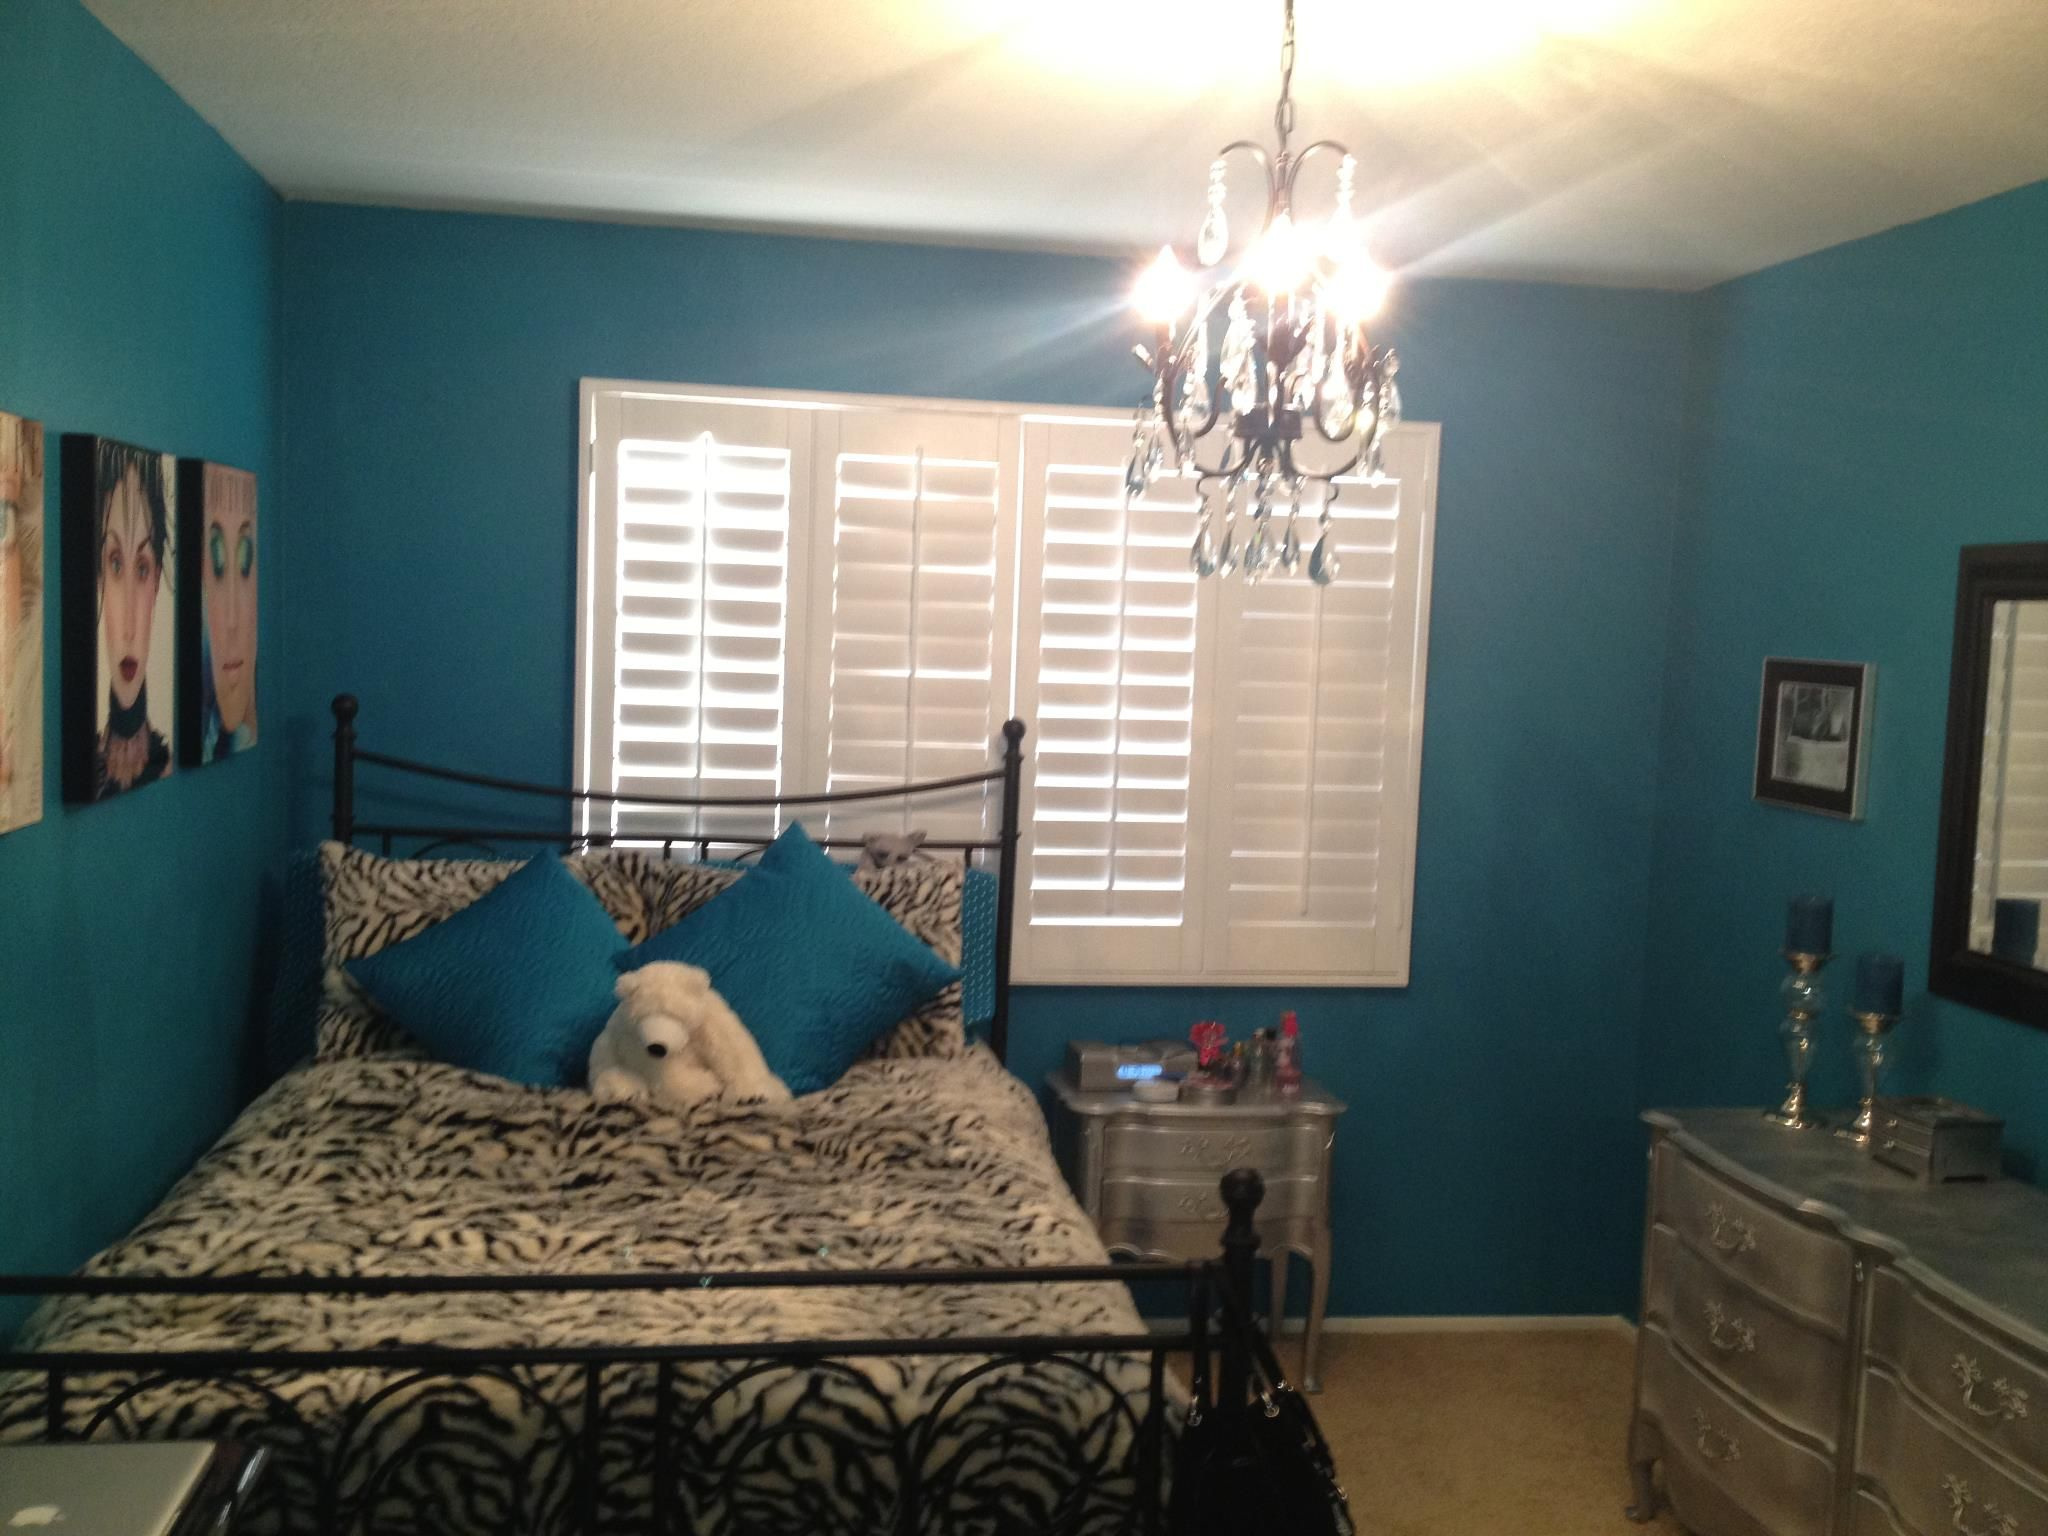 Teal Bedroom Furniture Teal Wall Paint Chandelier Silver Diy Furniture Make A Maddy